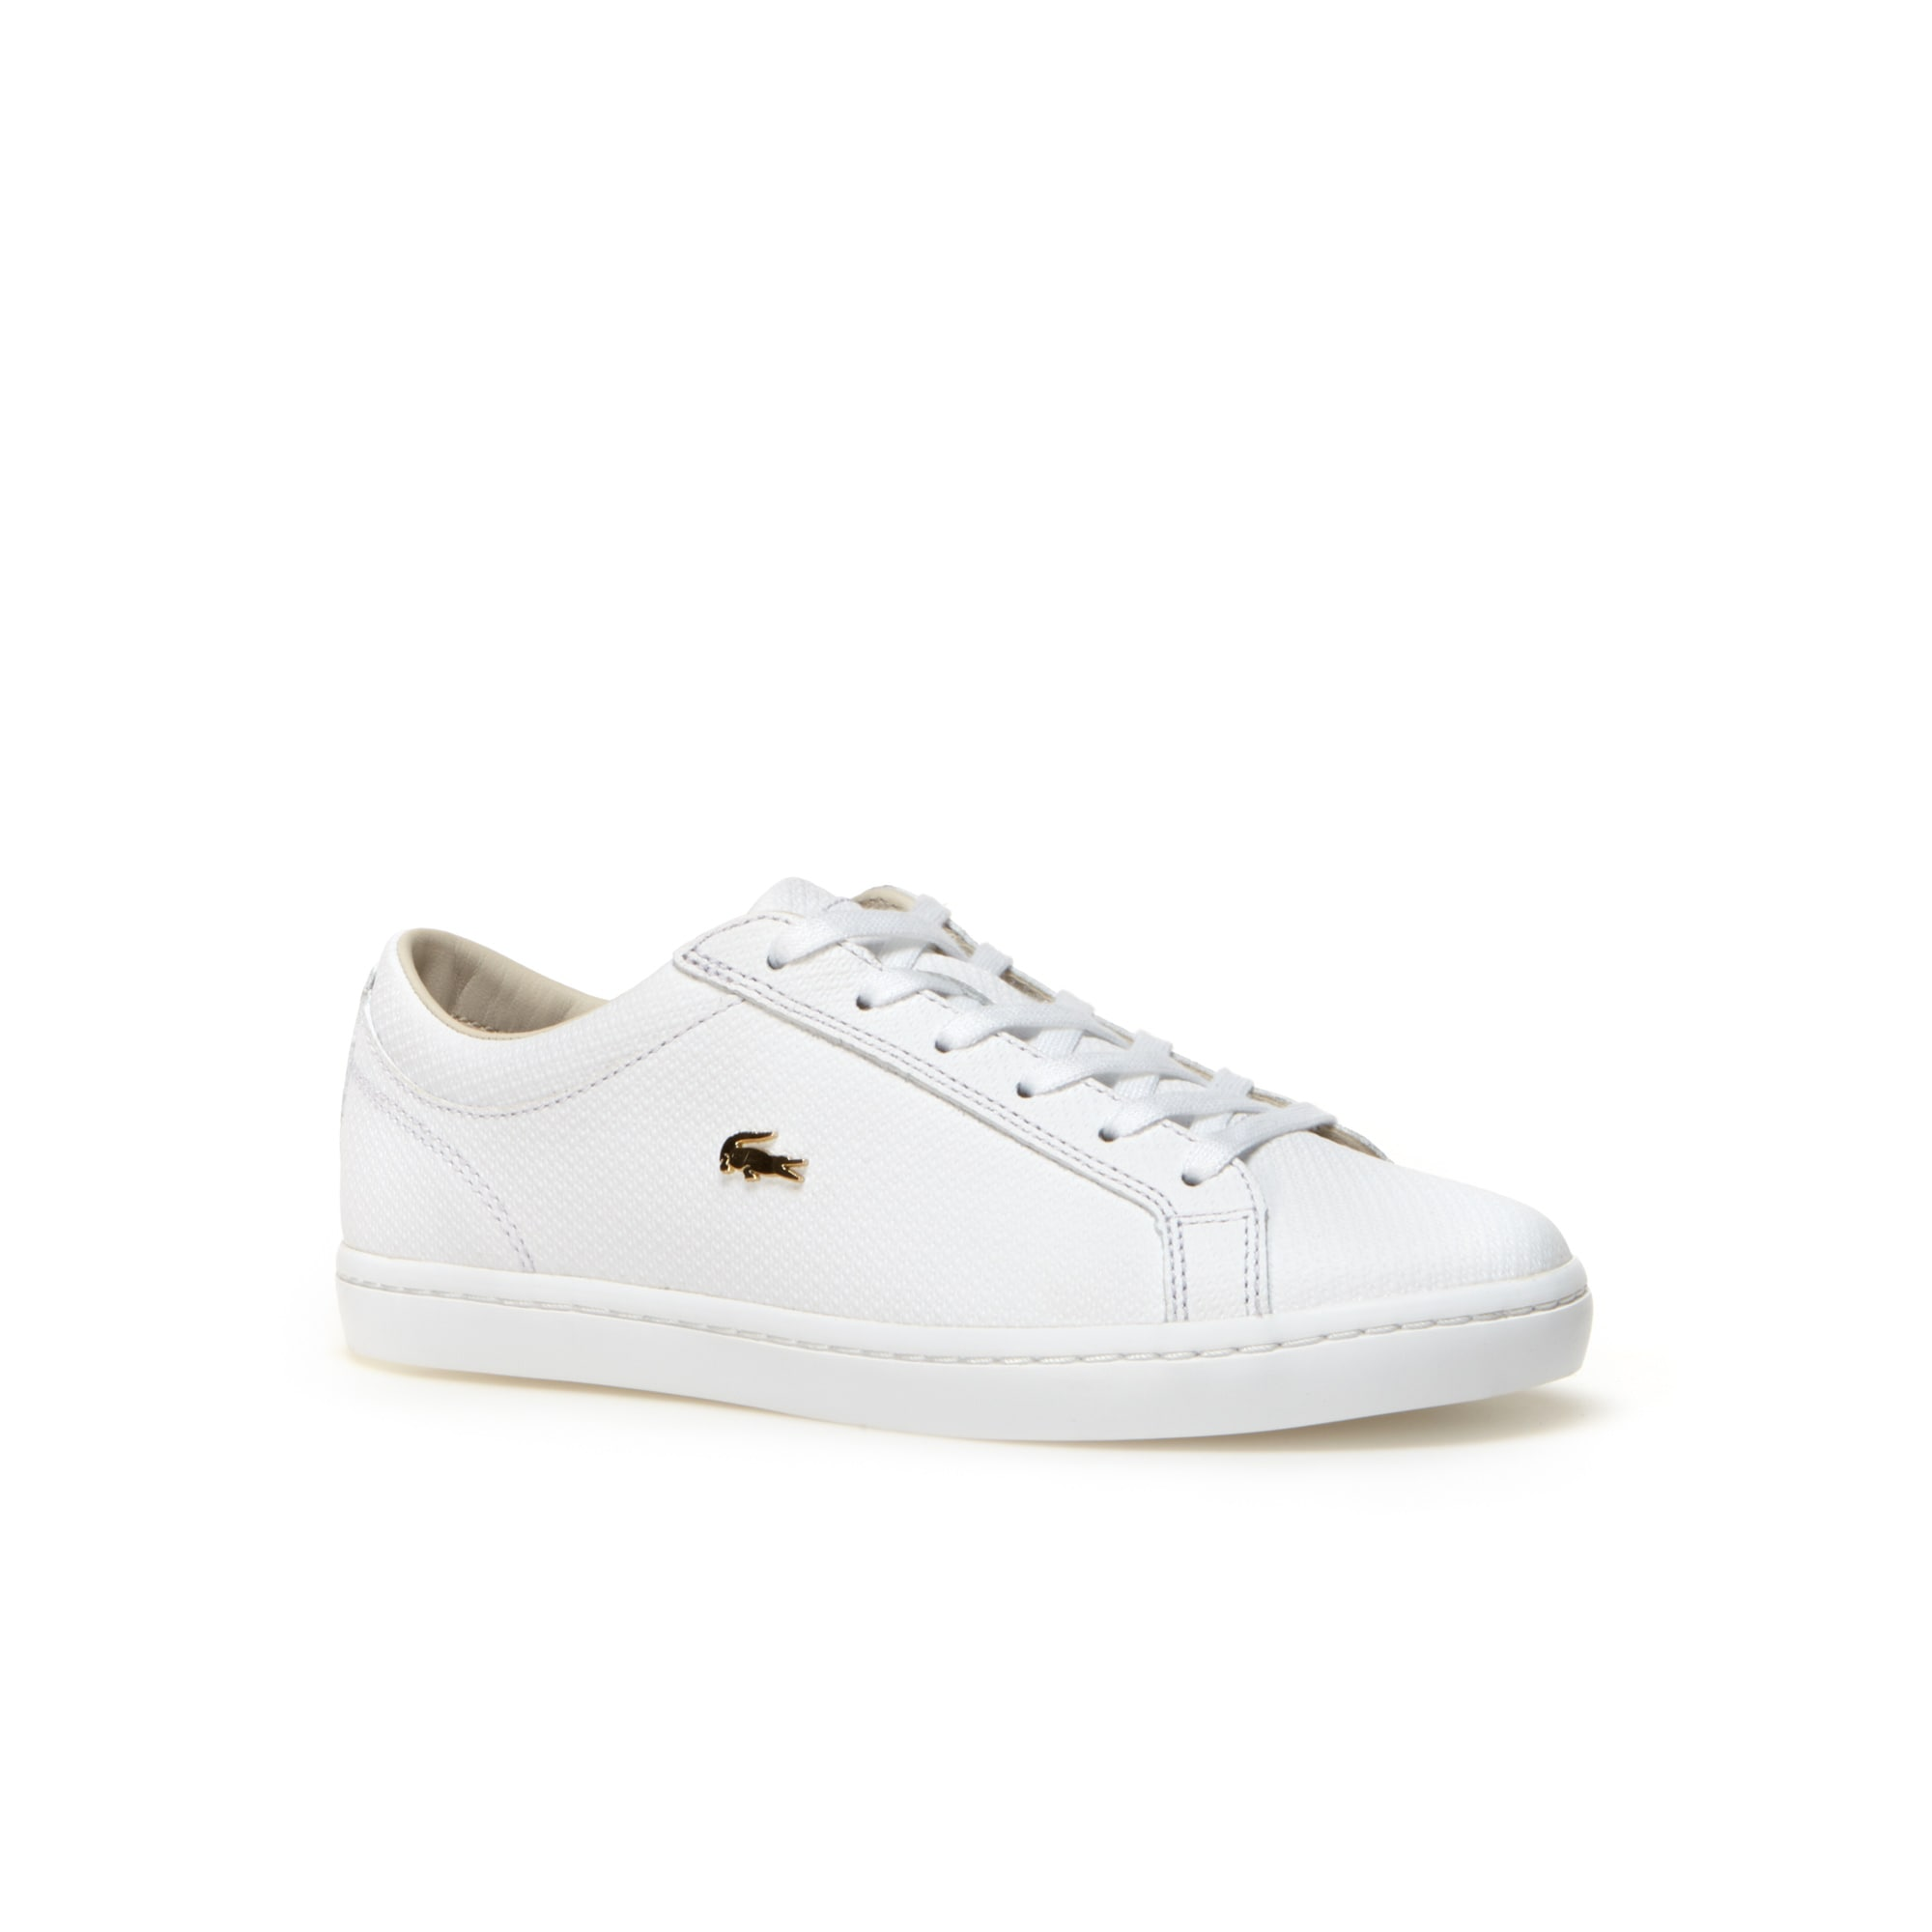 Lacoste Lacoste Collection Femme Collection Collection Chaussures Chaussures Collection Femme Femme Chaussures Lacoste Chaussures Lacoste Femme Chaussures qq5Yprw